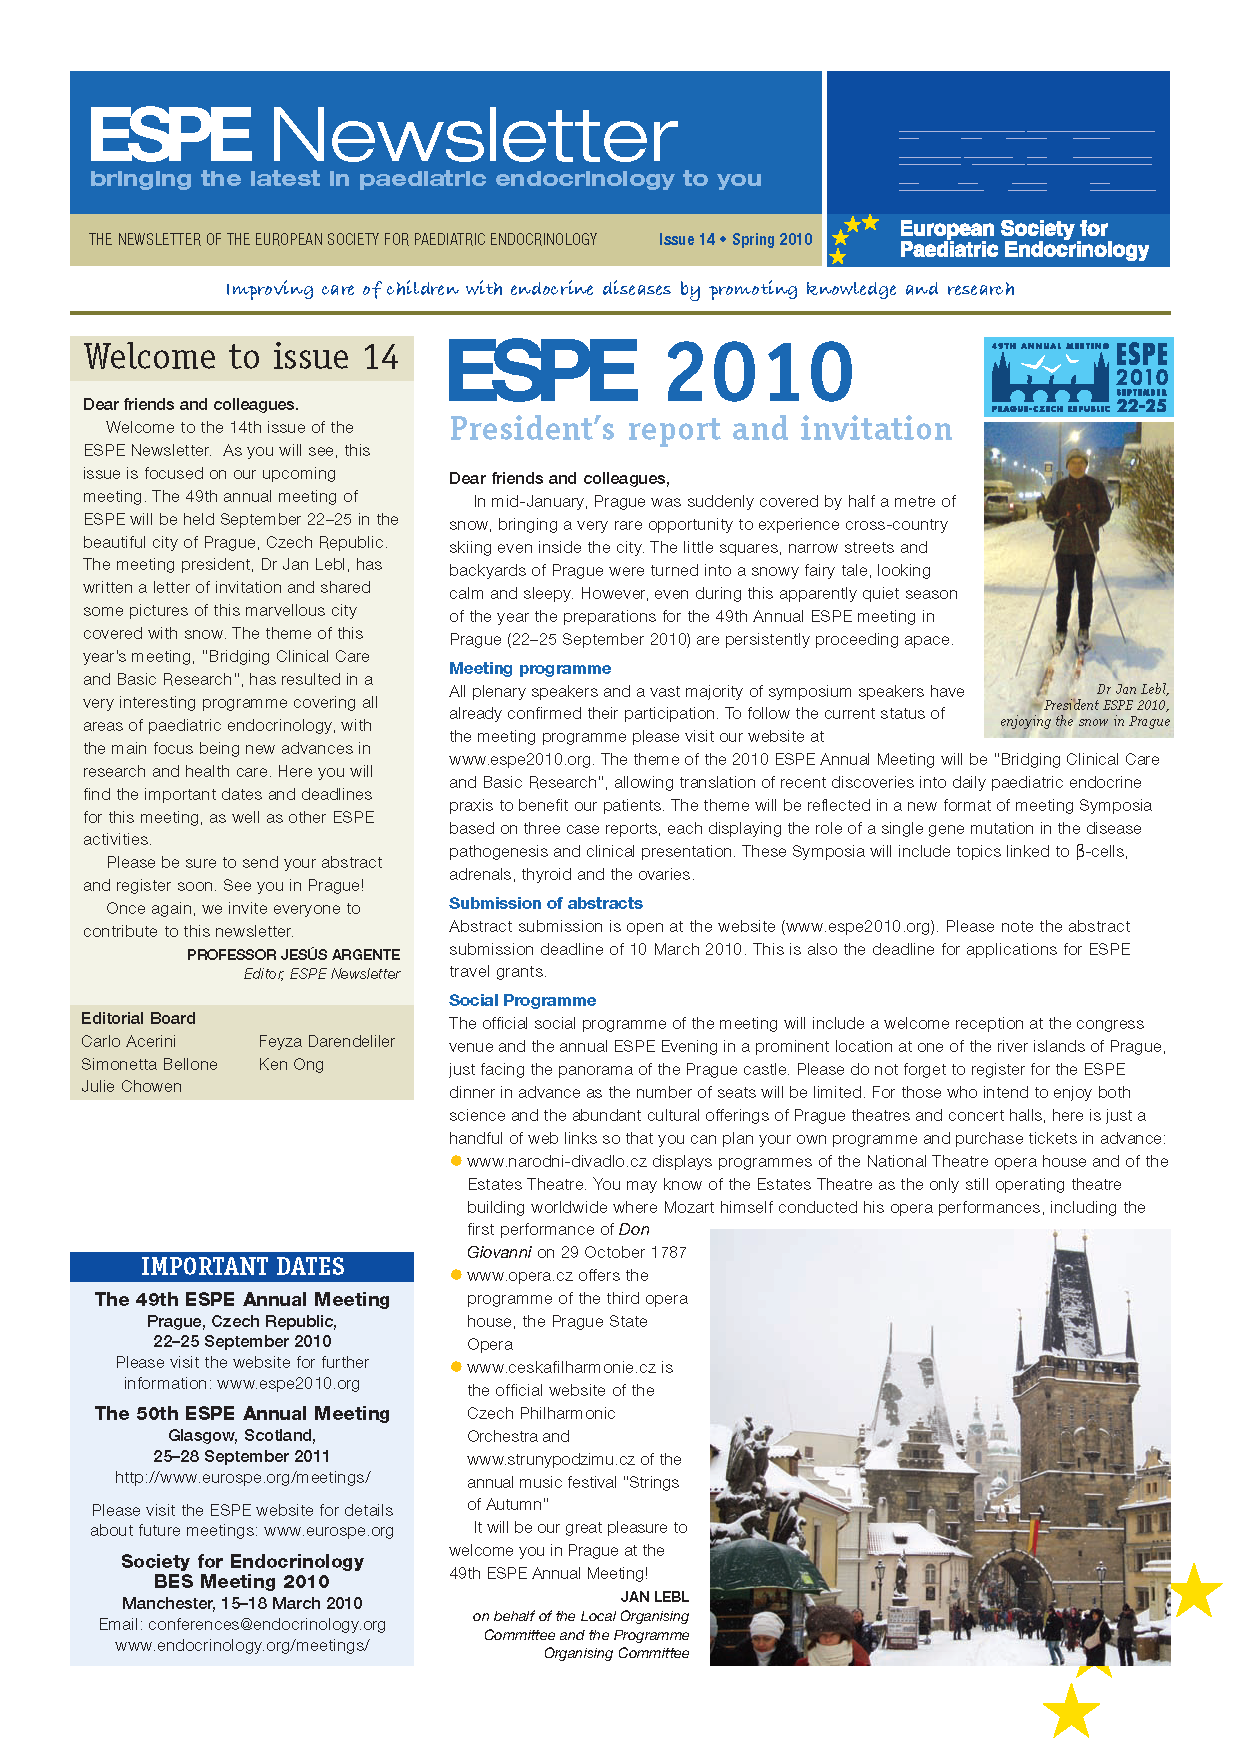 Issue 14 - Spring 2010